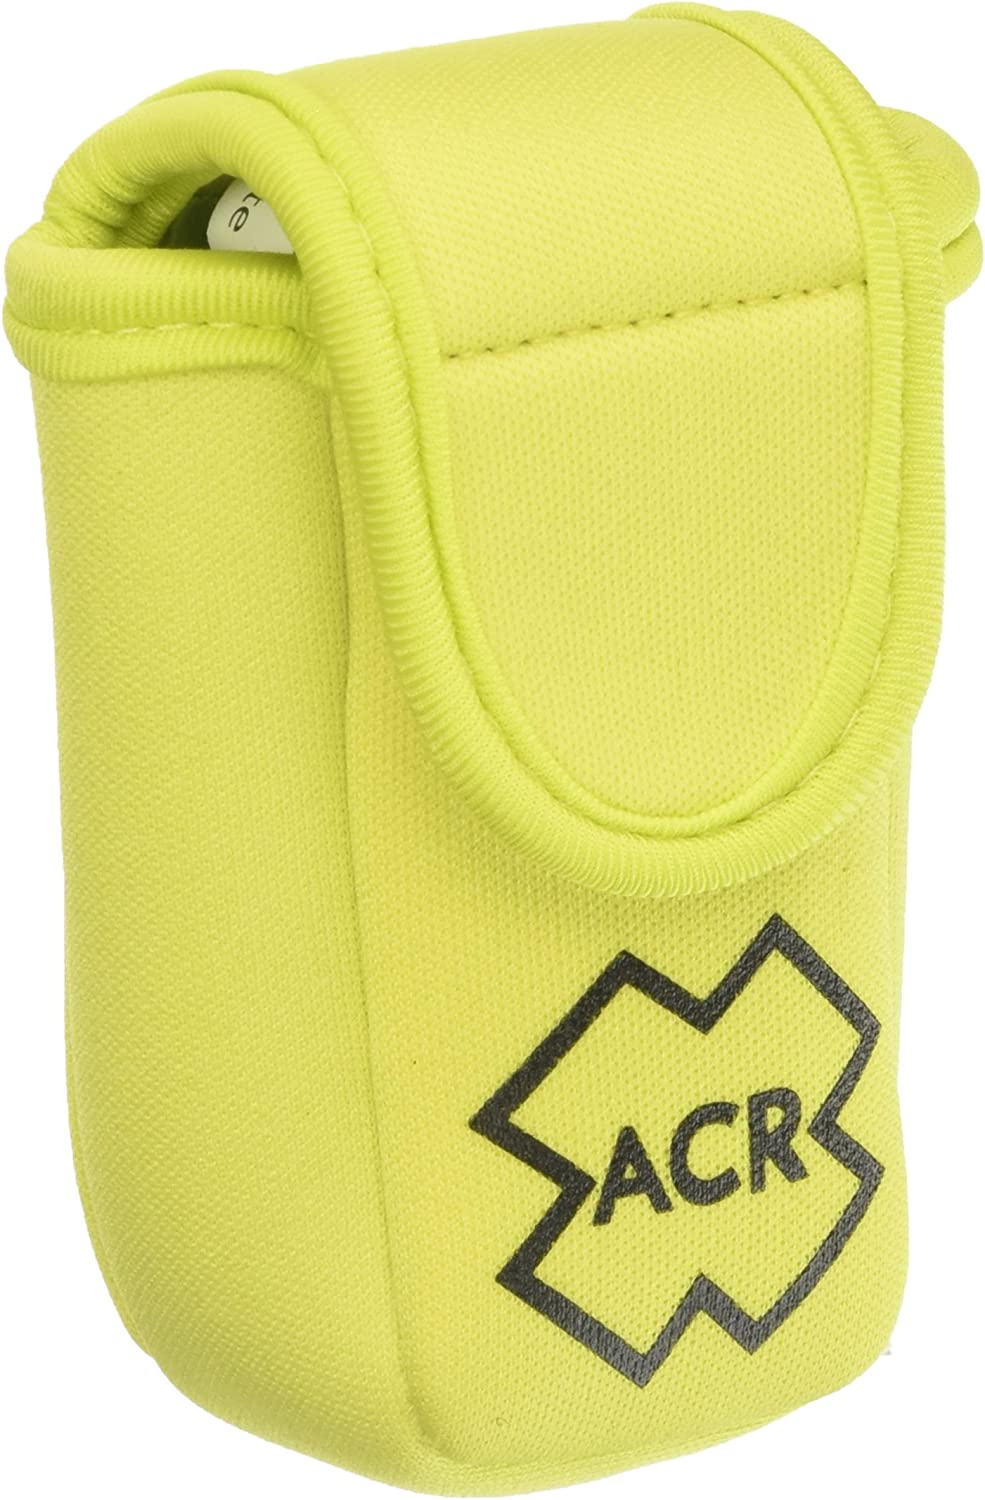 ACR Electronics Acr 9521 Floating Pouch F Resqlink